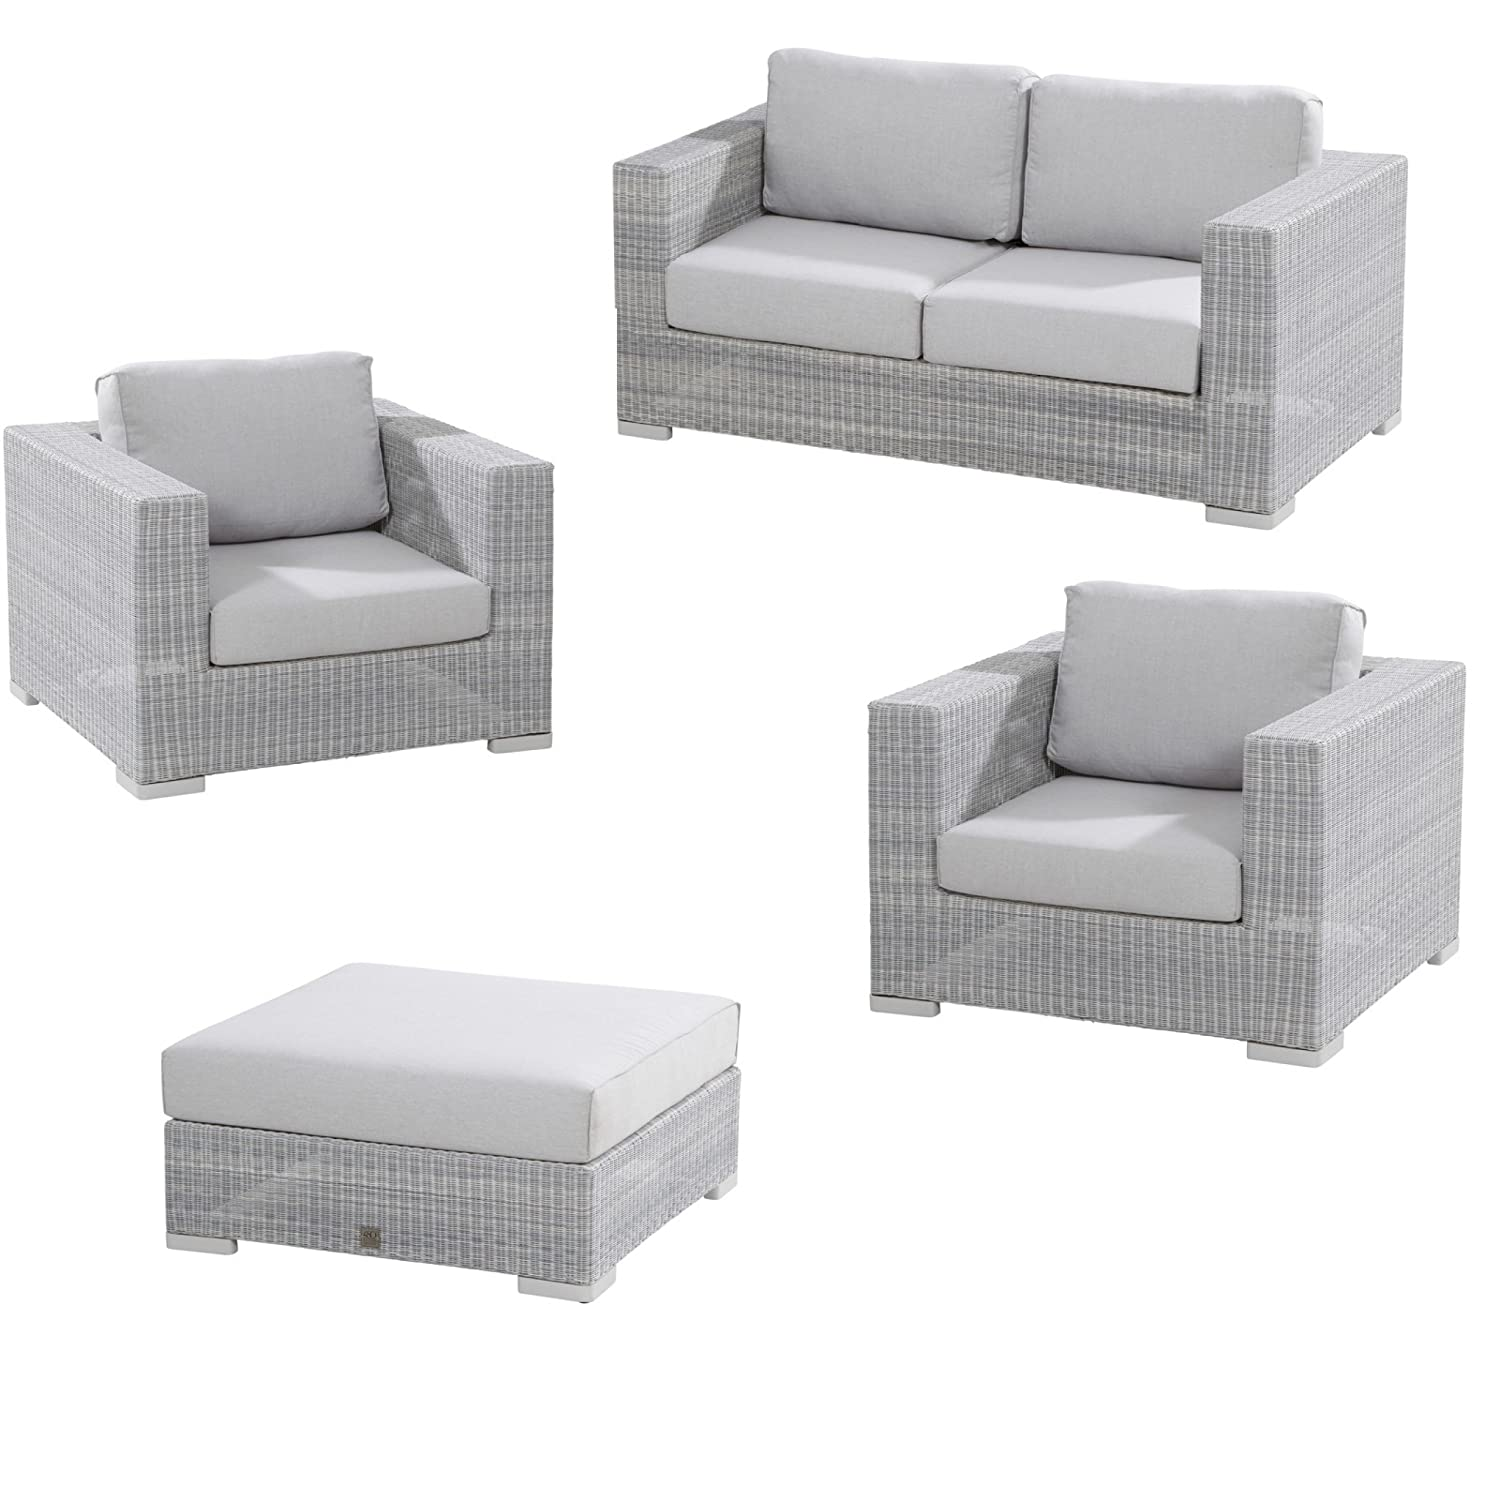 Lounge sofa outdoor günstig  4Seasons Outdoor Lucca 4-teilige Loungegruppe mit Loungesofa ...